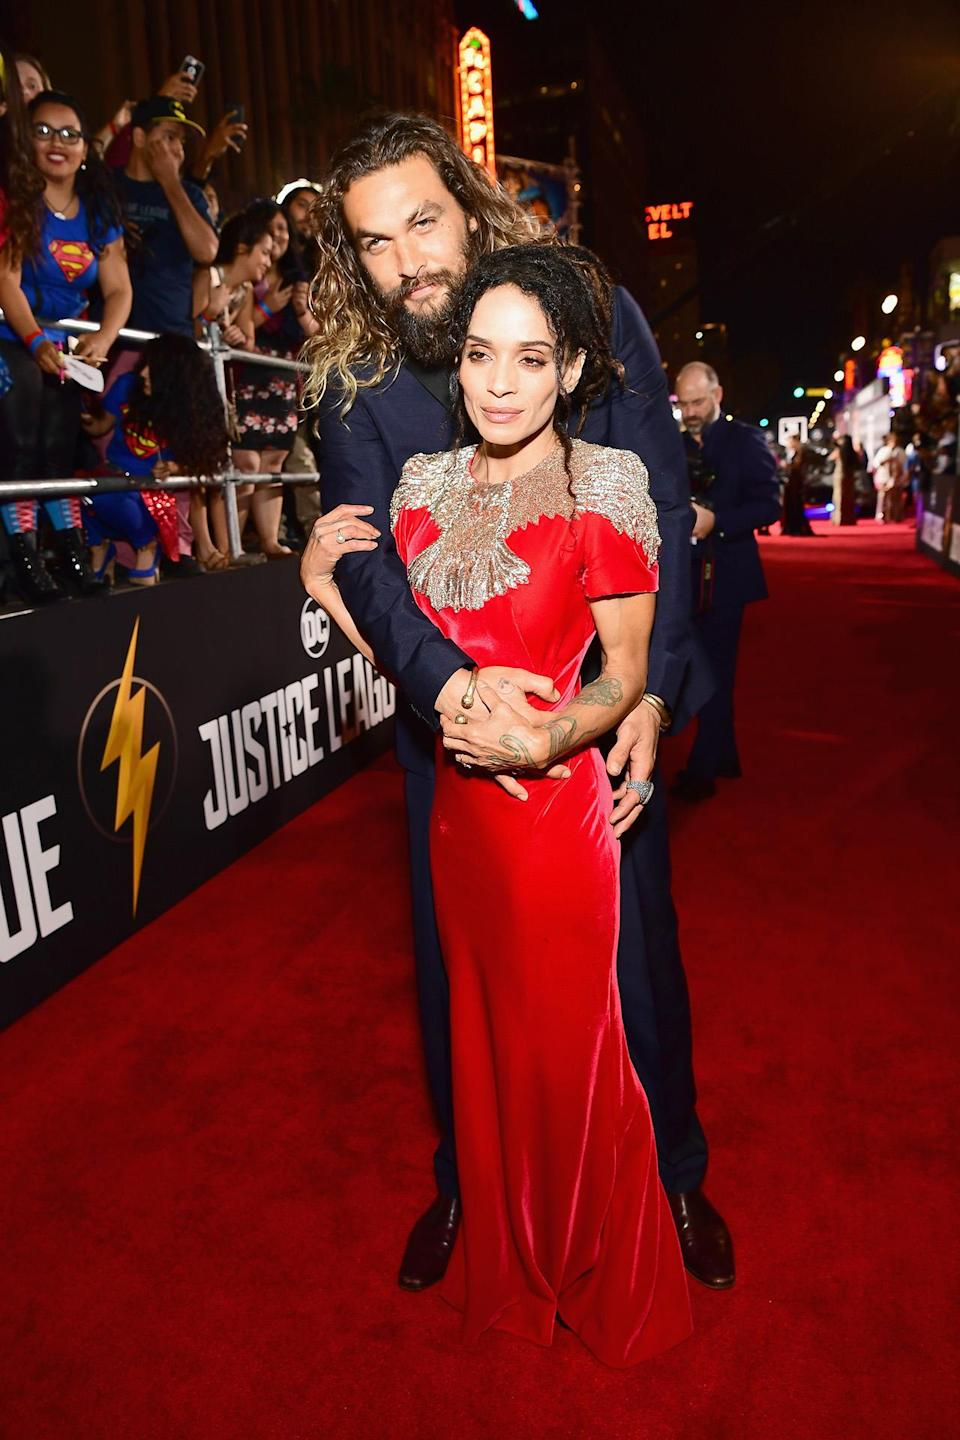 The newly married couple walked their first joint red carpet together since their nuptials.